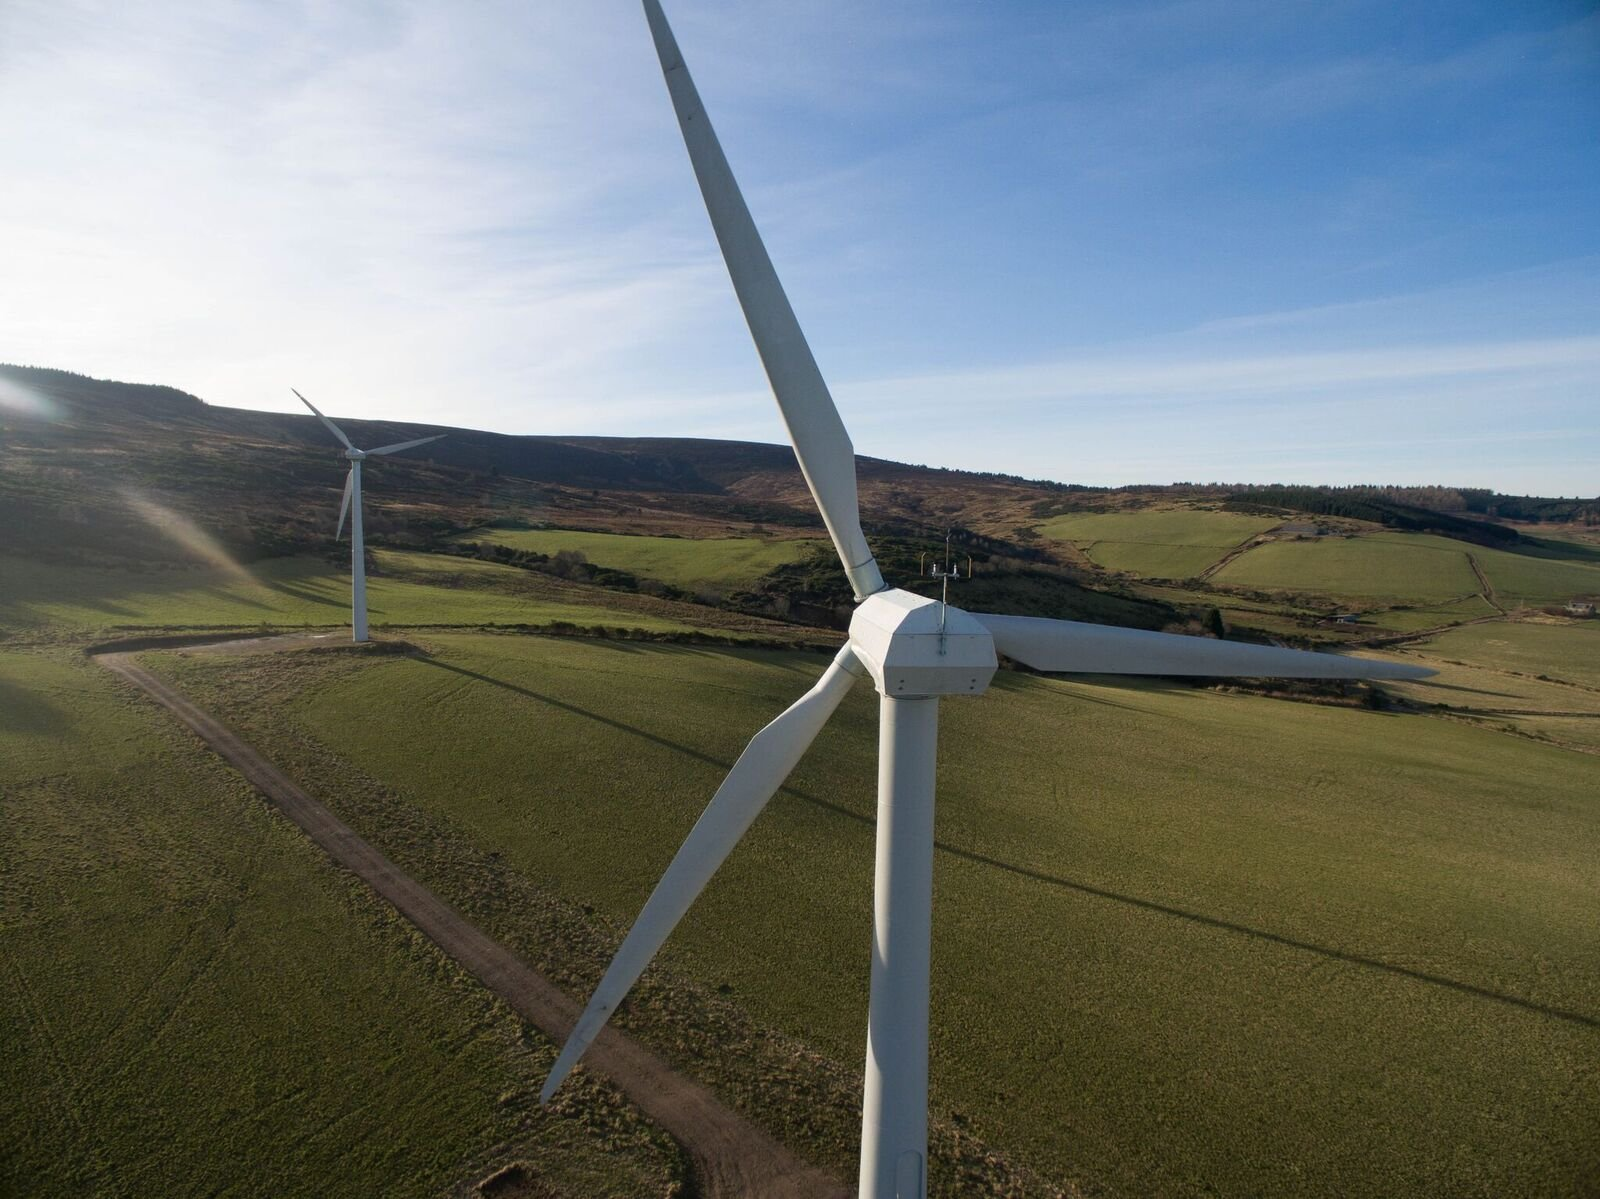 Slovenian government shows support for wind farms